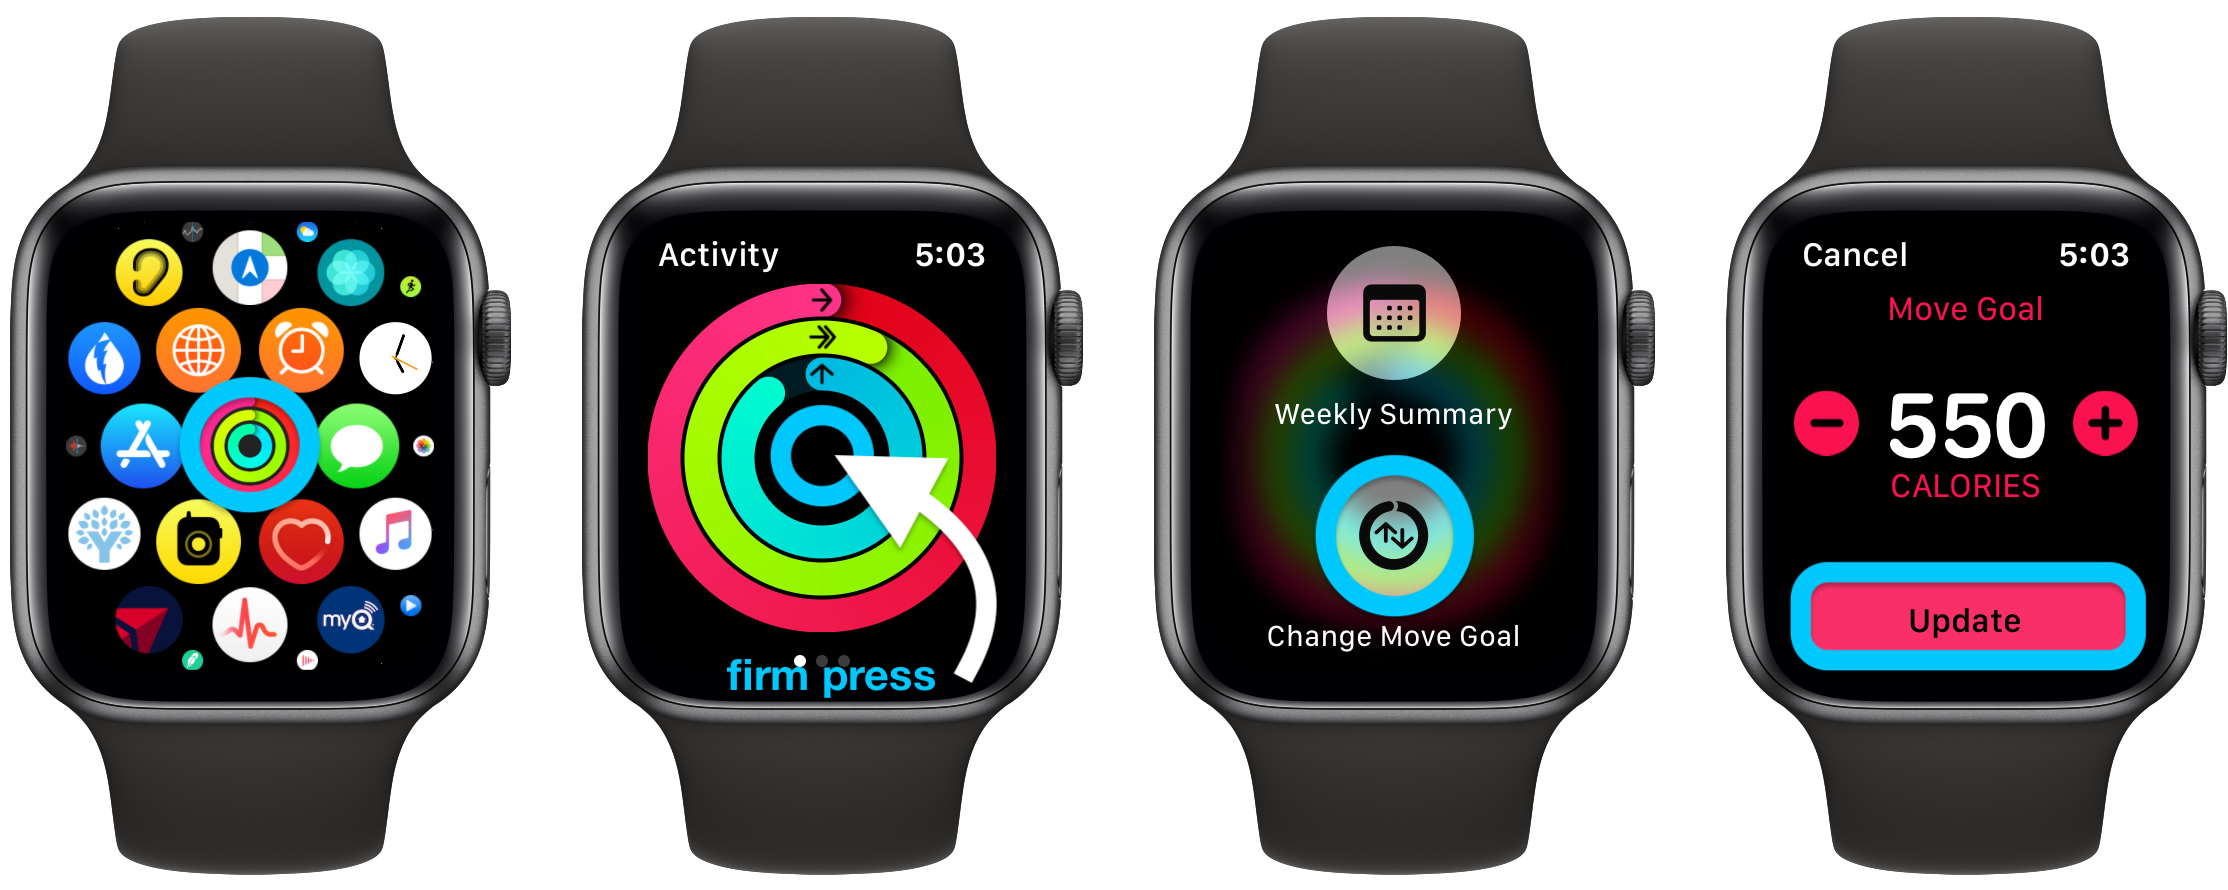 How to change Apple Watch Move goal Exercise goal walkthrough 1